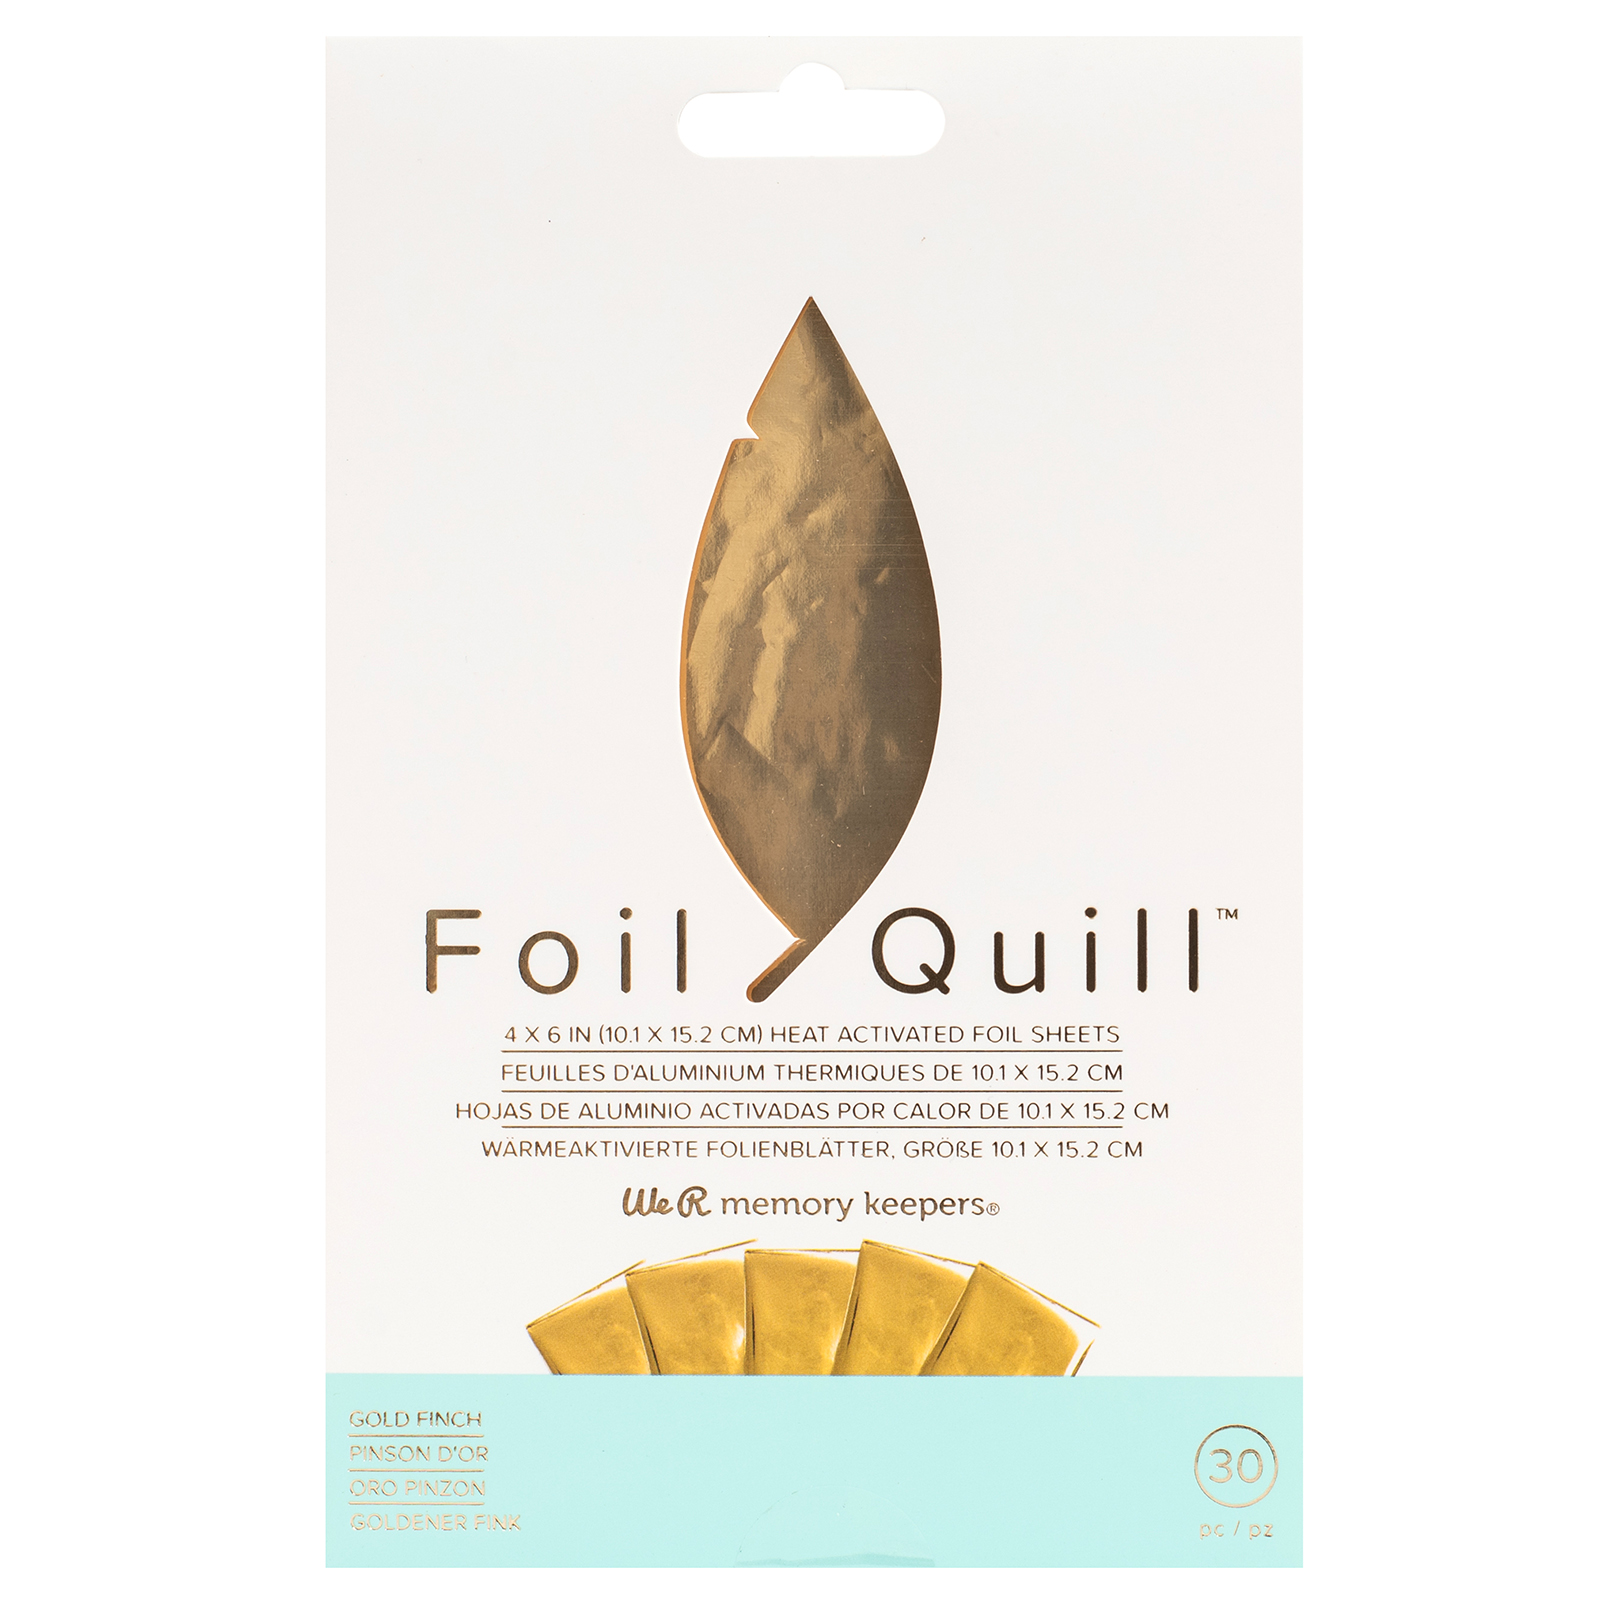 foil quill gold finch